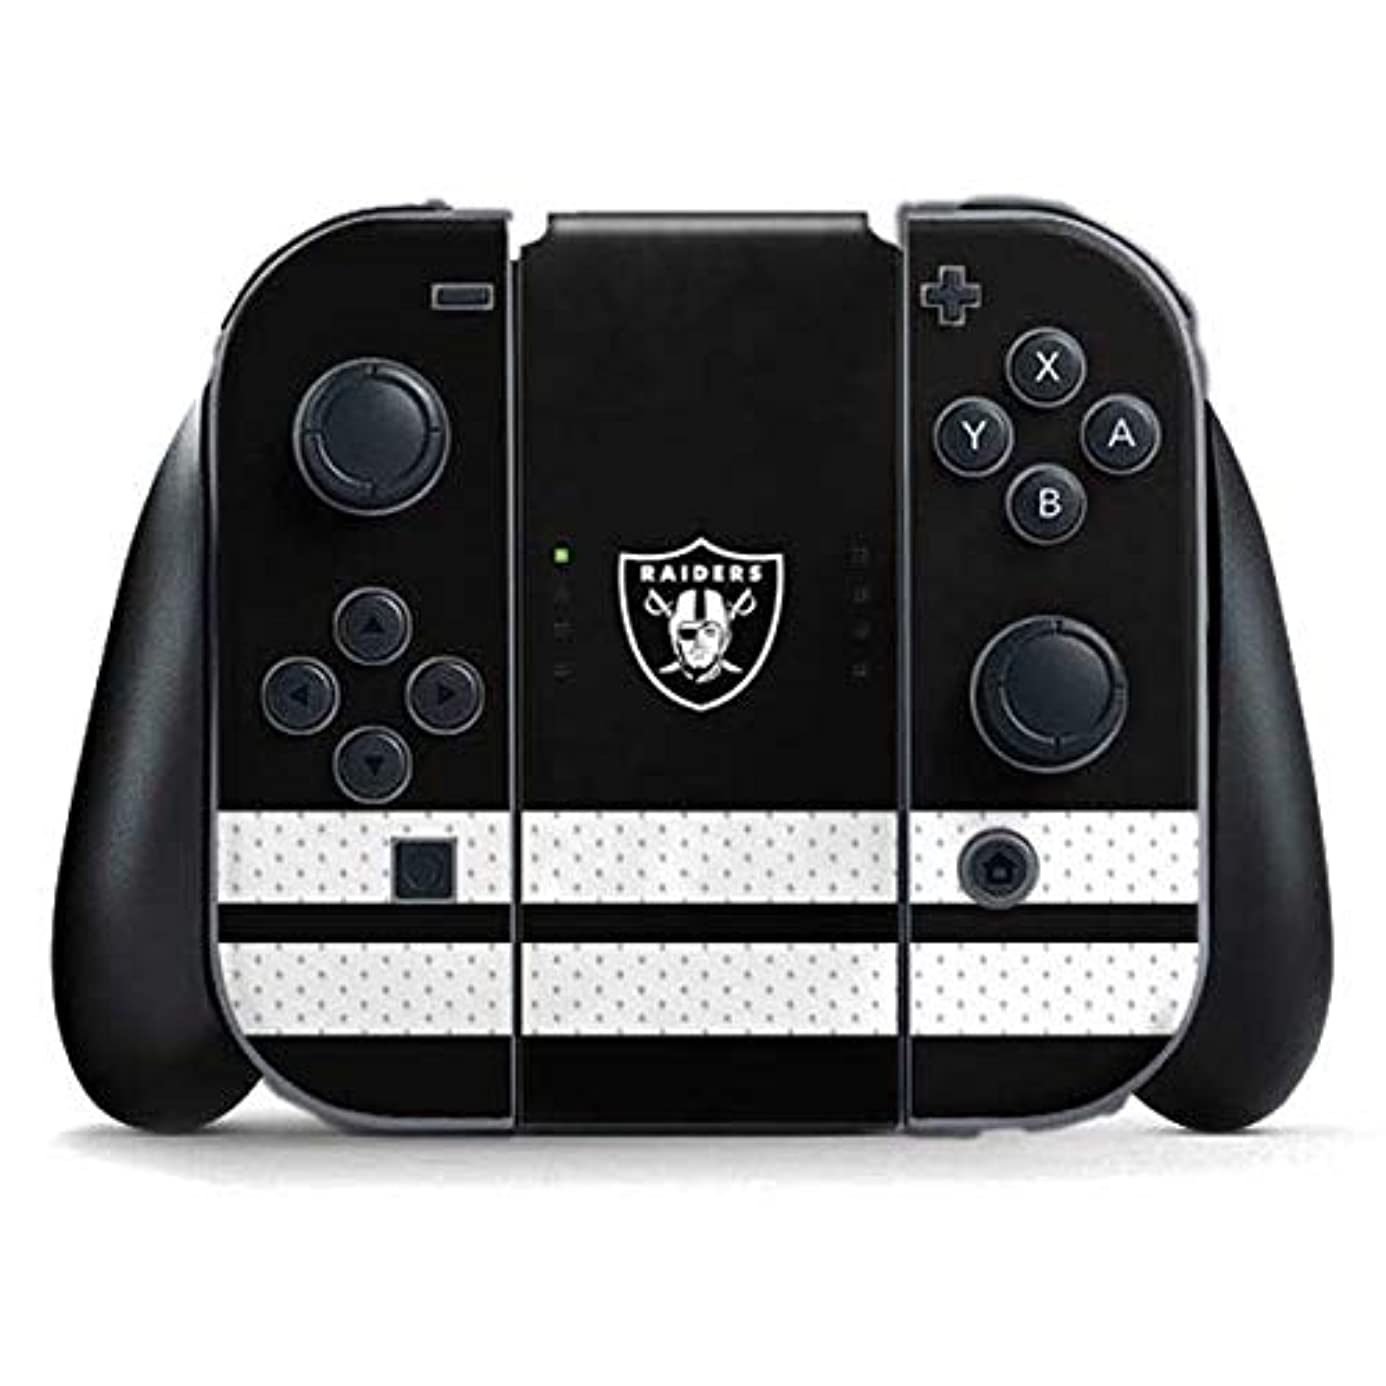 Skinit Oakland Raiders Shutout Nintendo Switch Joy Con Controller Skin - Officially Licensed NFL Gaming Decal - Ultra Thin, Lightweight Vinyl Decal Protection